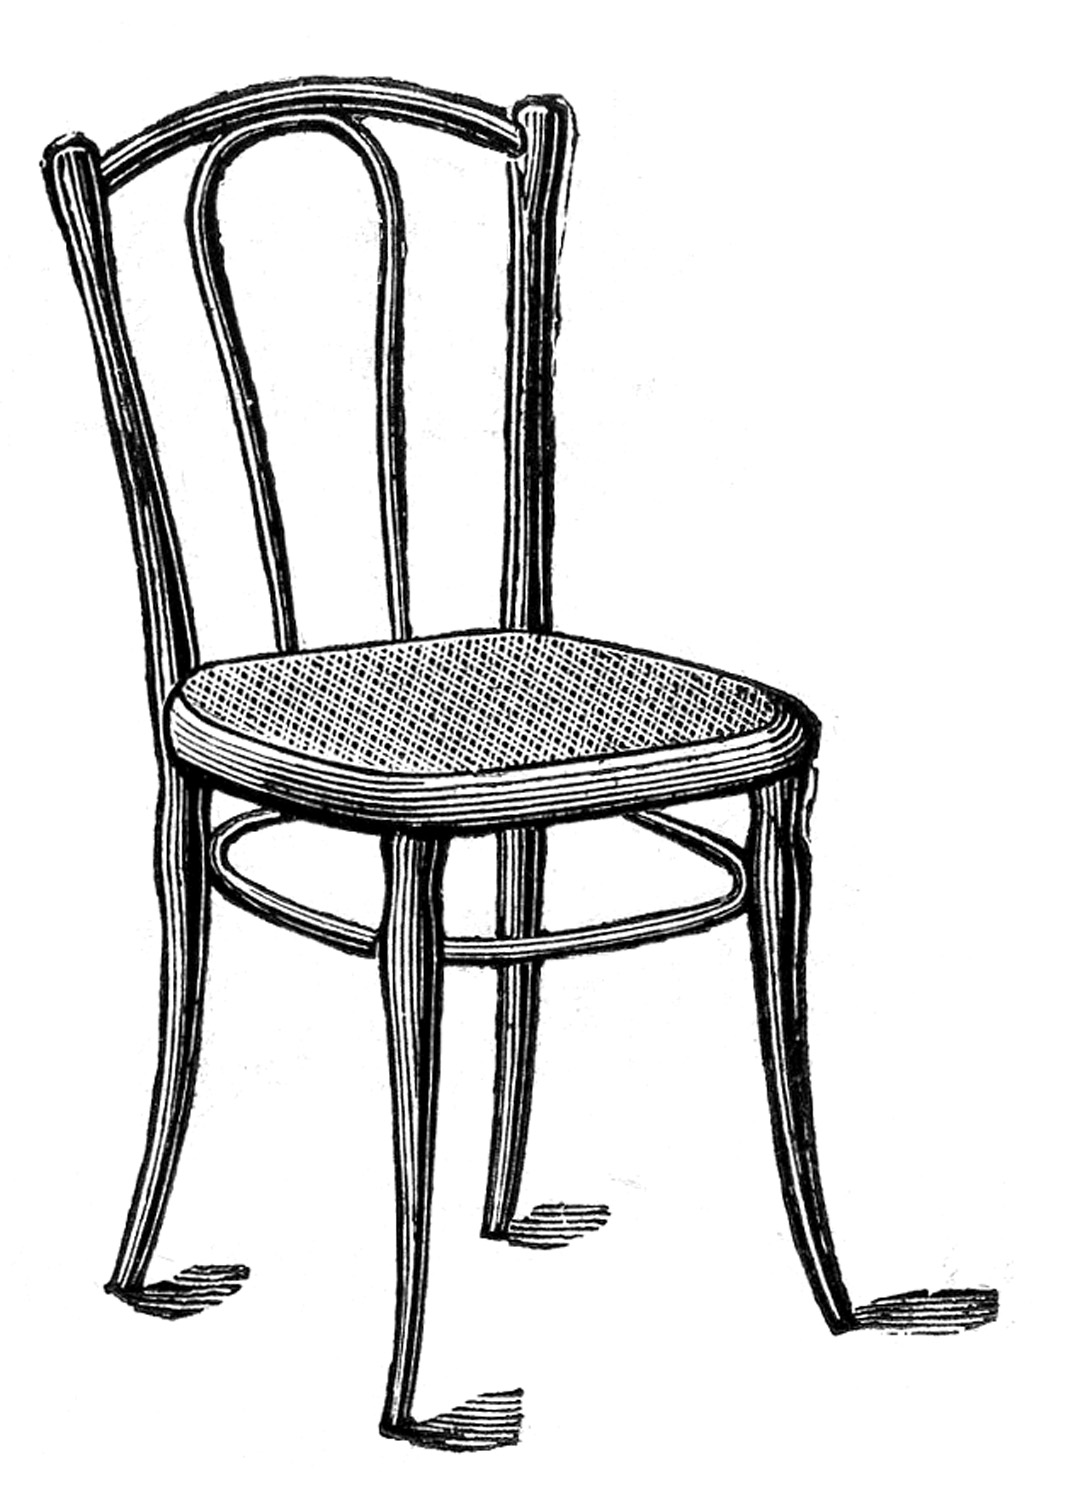 Antique Images - Caned Bentwood Chairs - The Graphics Fairy